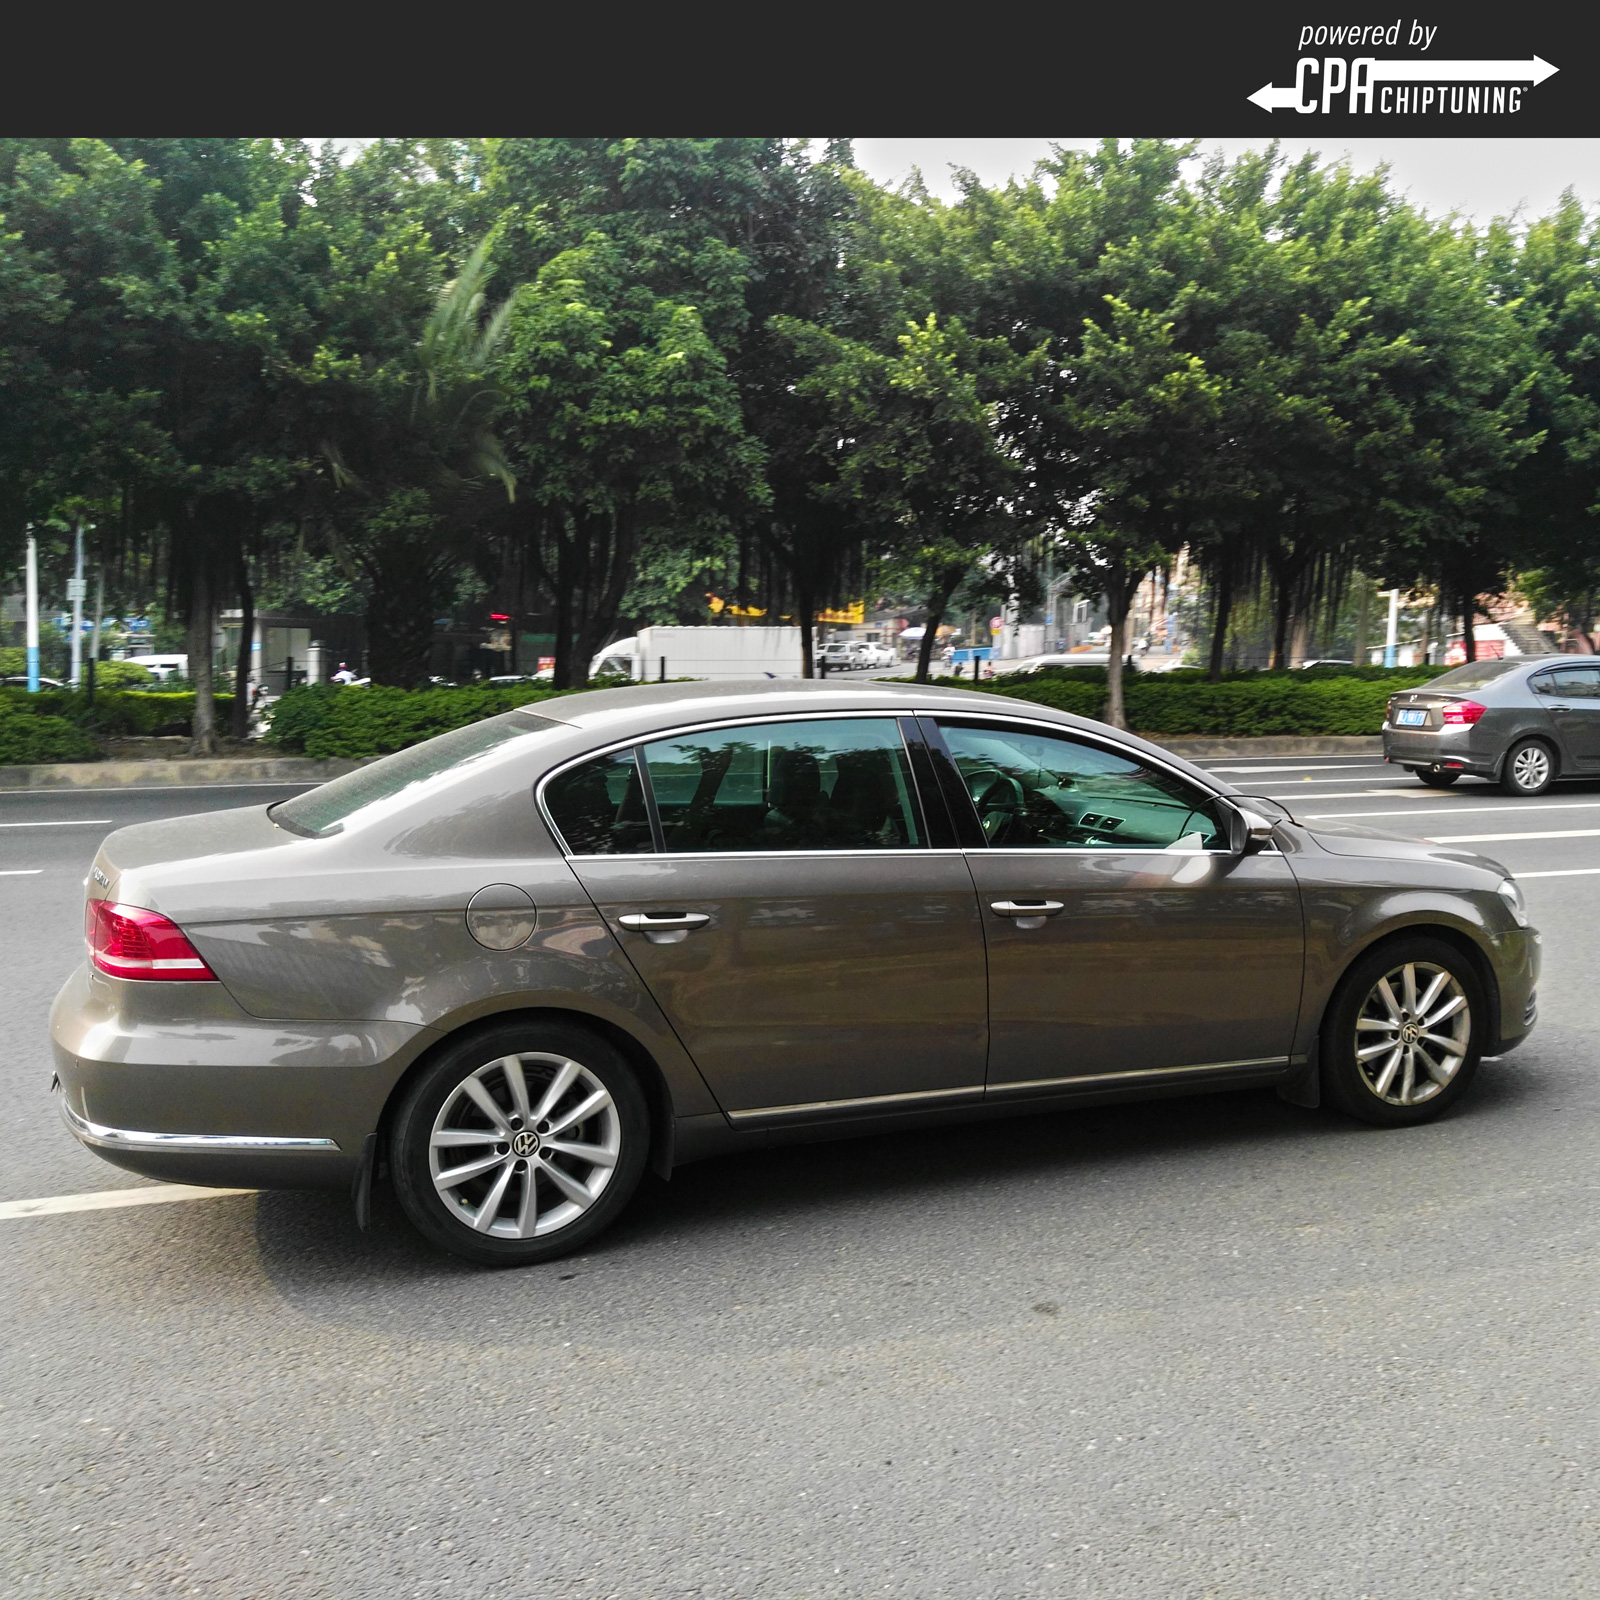 O segredo do VW Passat 1.4 TSI